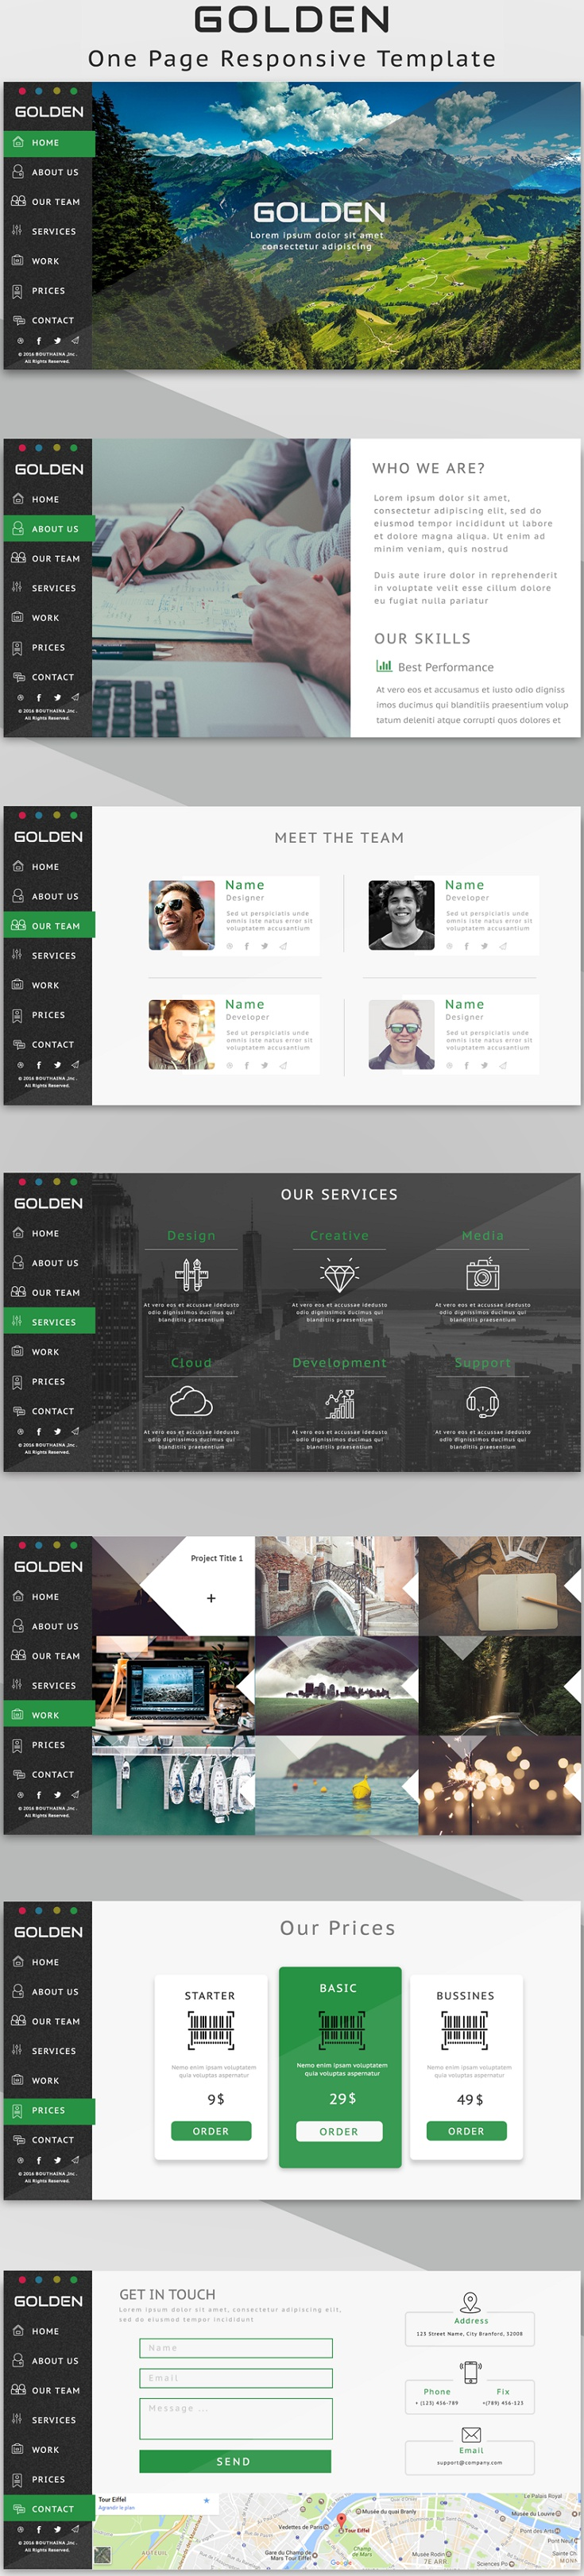 Golden  One Page Responsive Template  First Page Resume And As